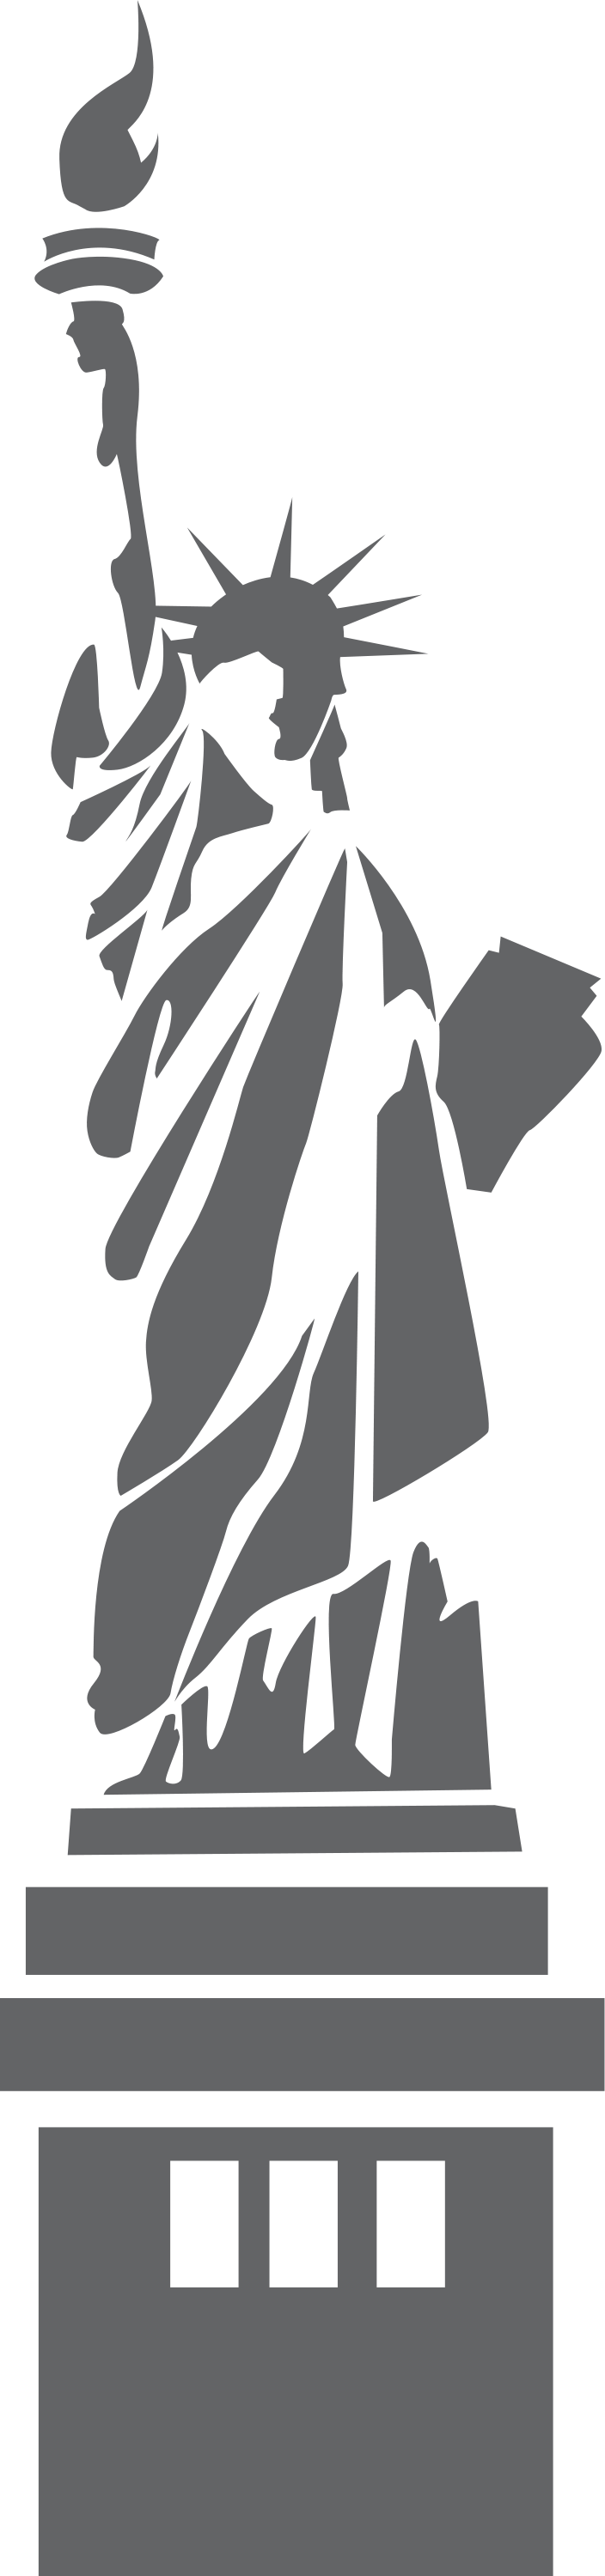 vector royalty free library Liberty clipart tattoo. Illustration of the statue.